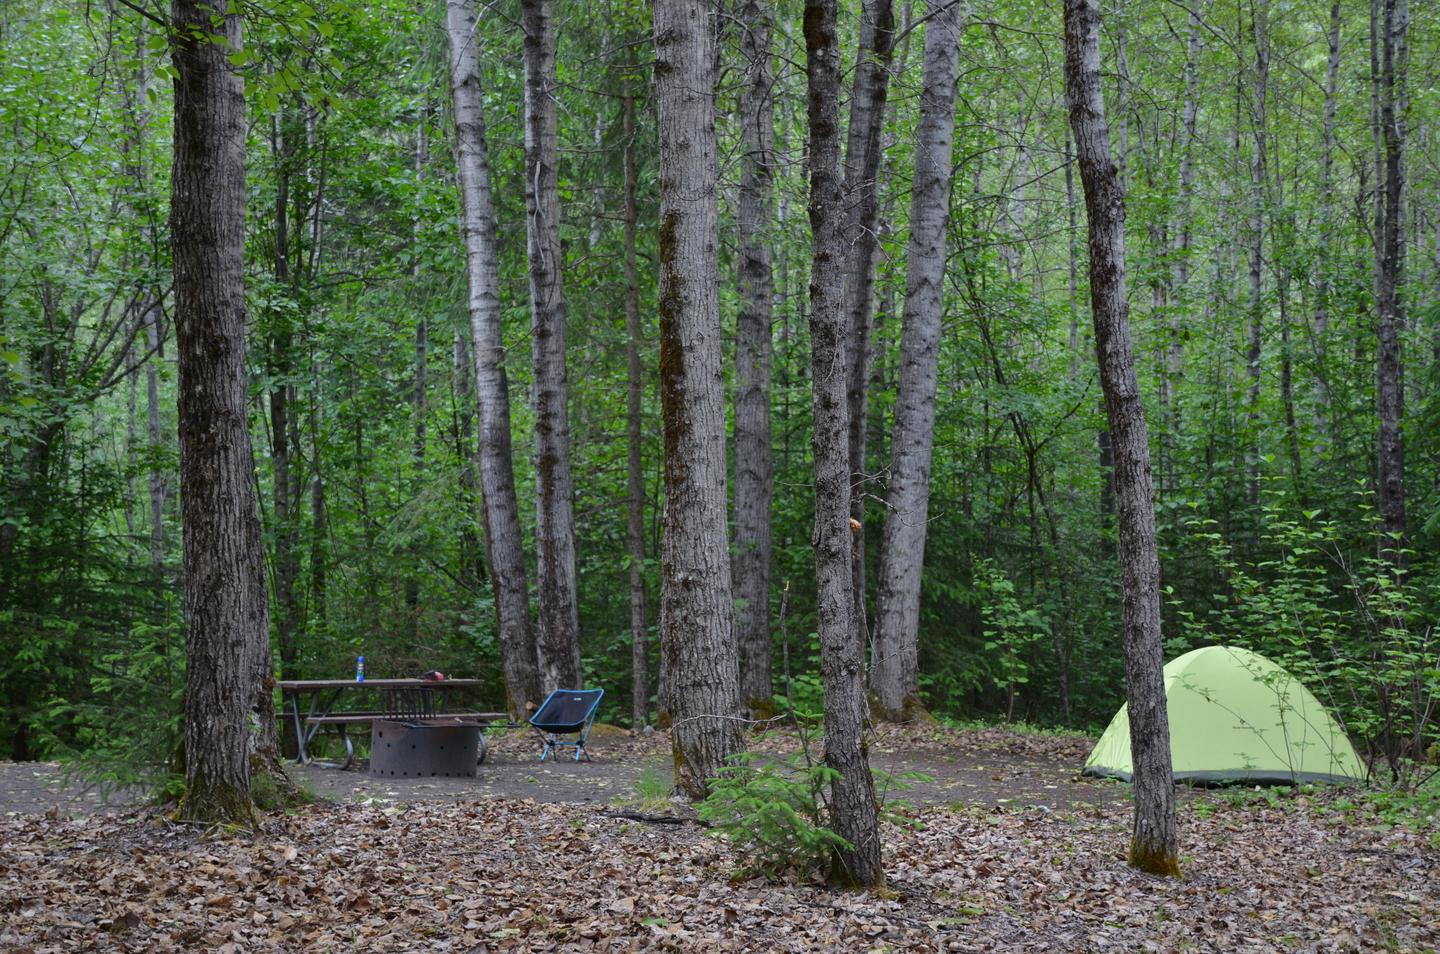 Campsite in the treesThe Dyea campground represents a restful place after the hustle and bustle of Skagway.